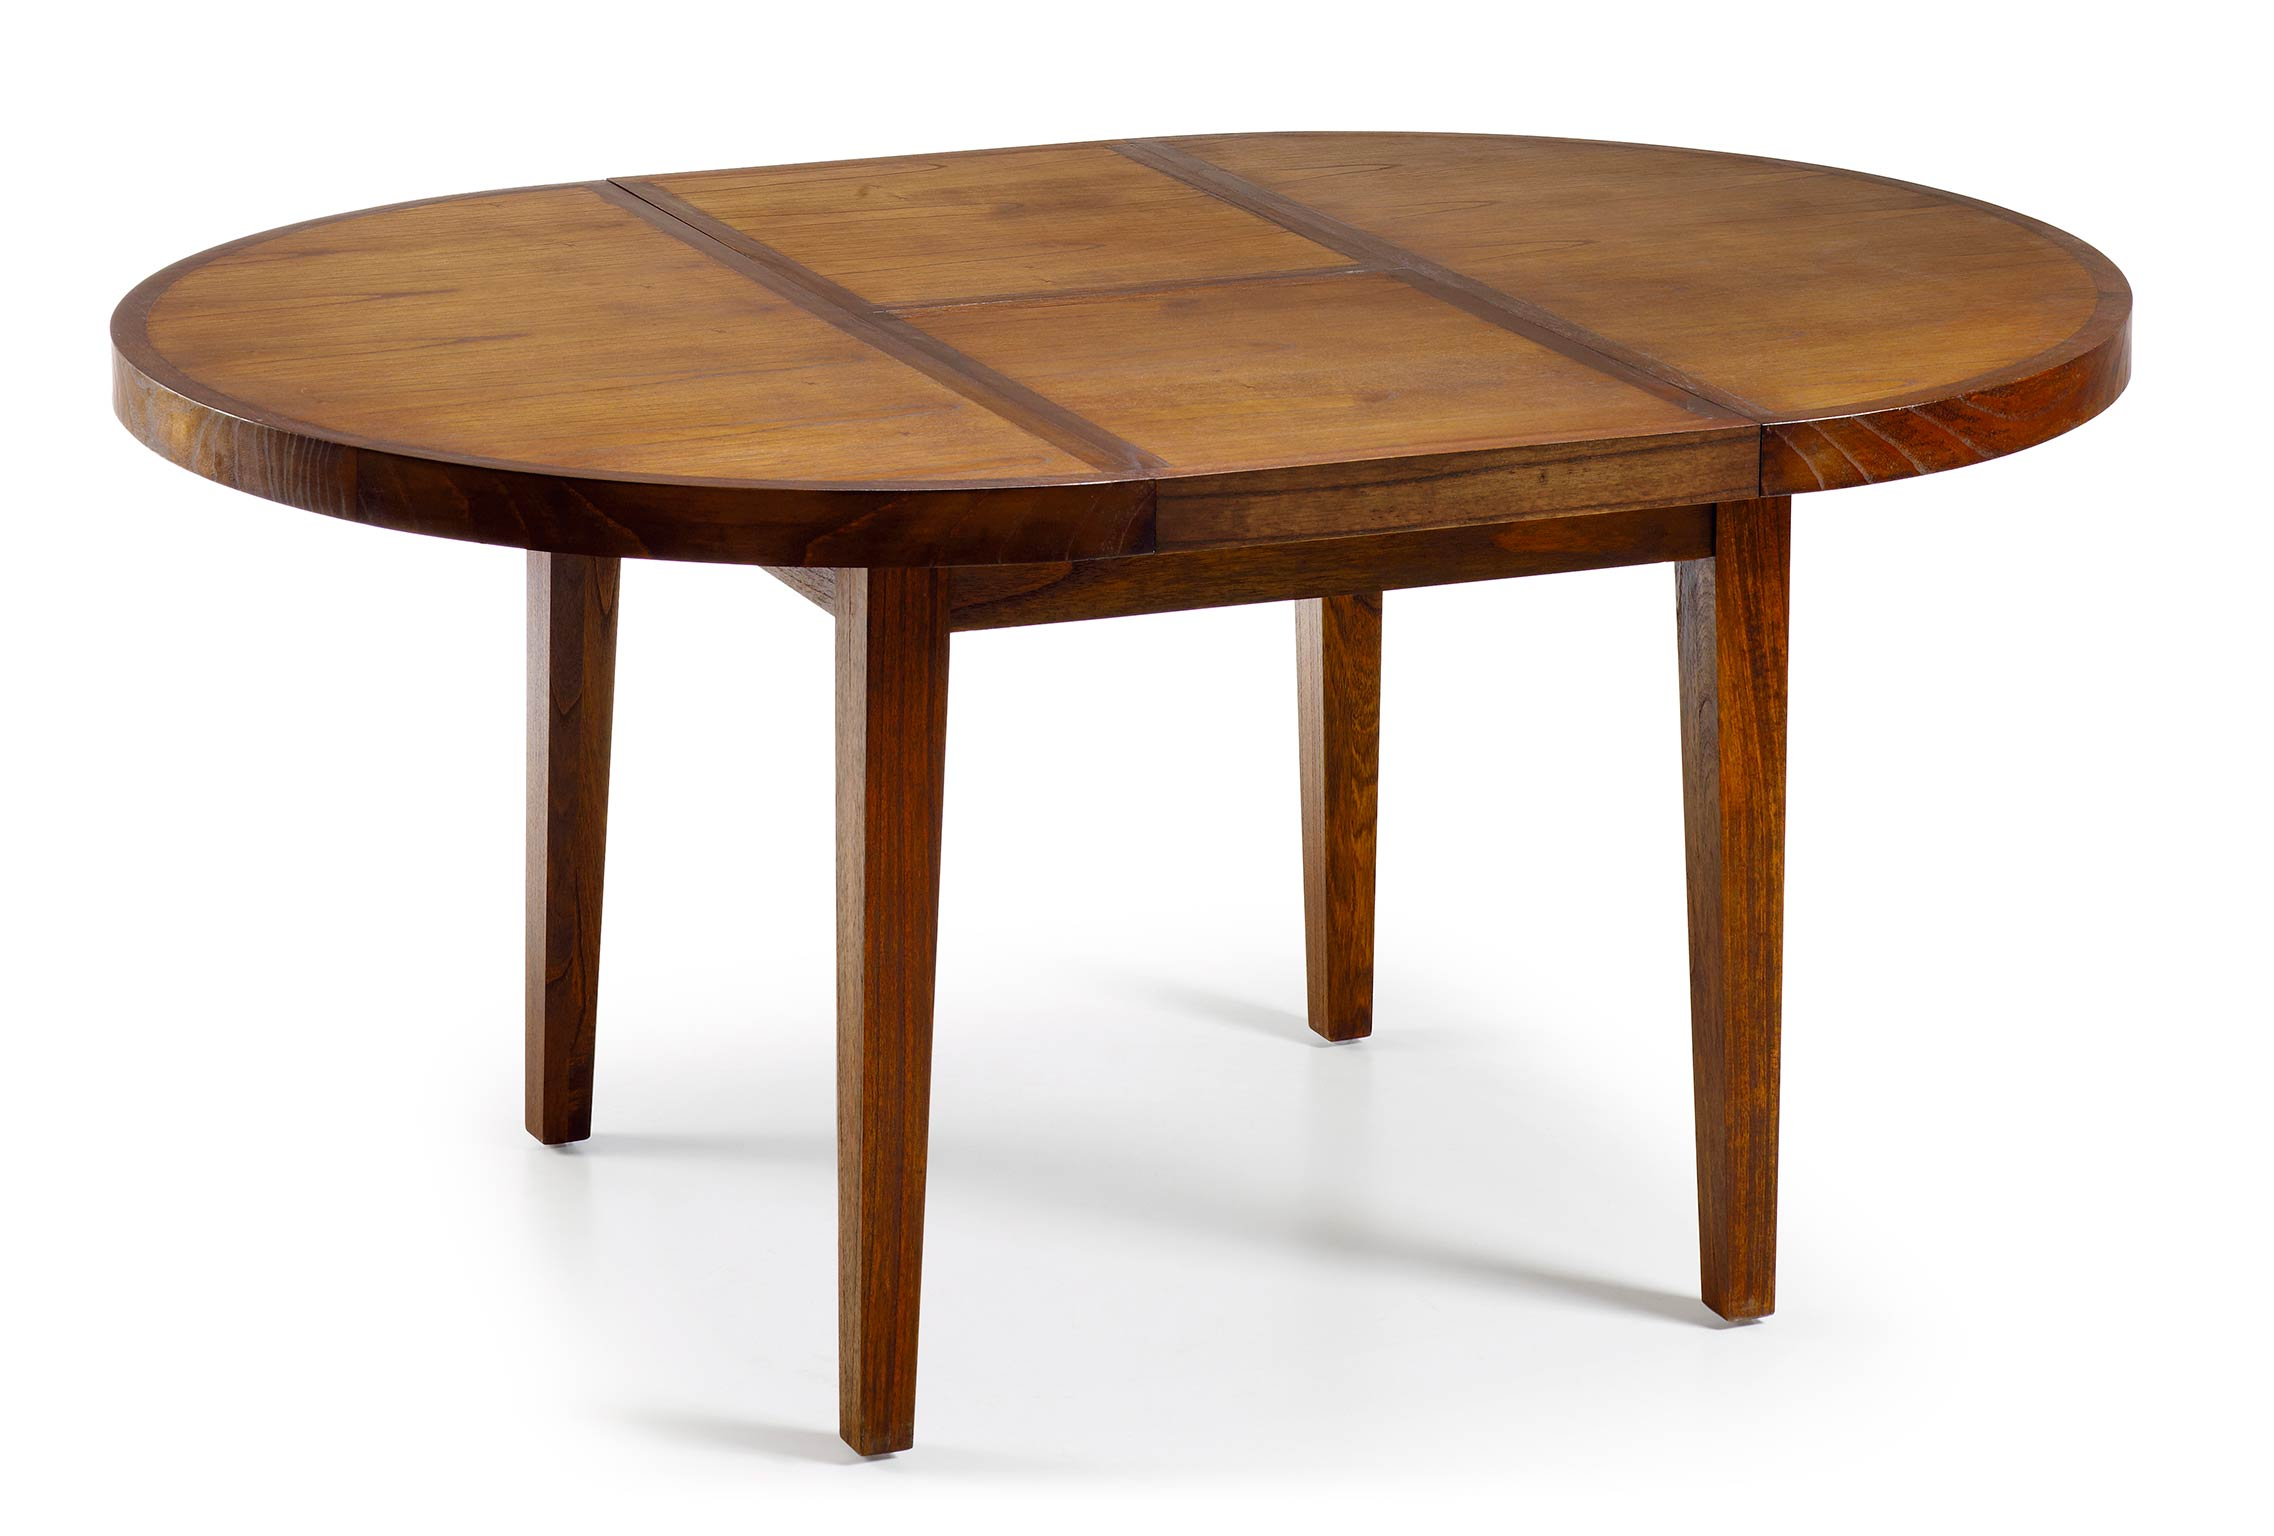 Table Ronde Allonges Table Ronde En Bois Avec Rallonge Portefeuille Collection Mawan